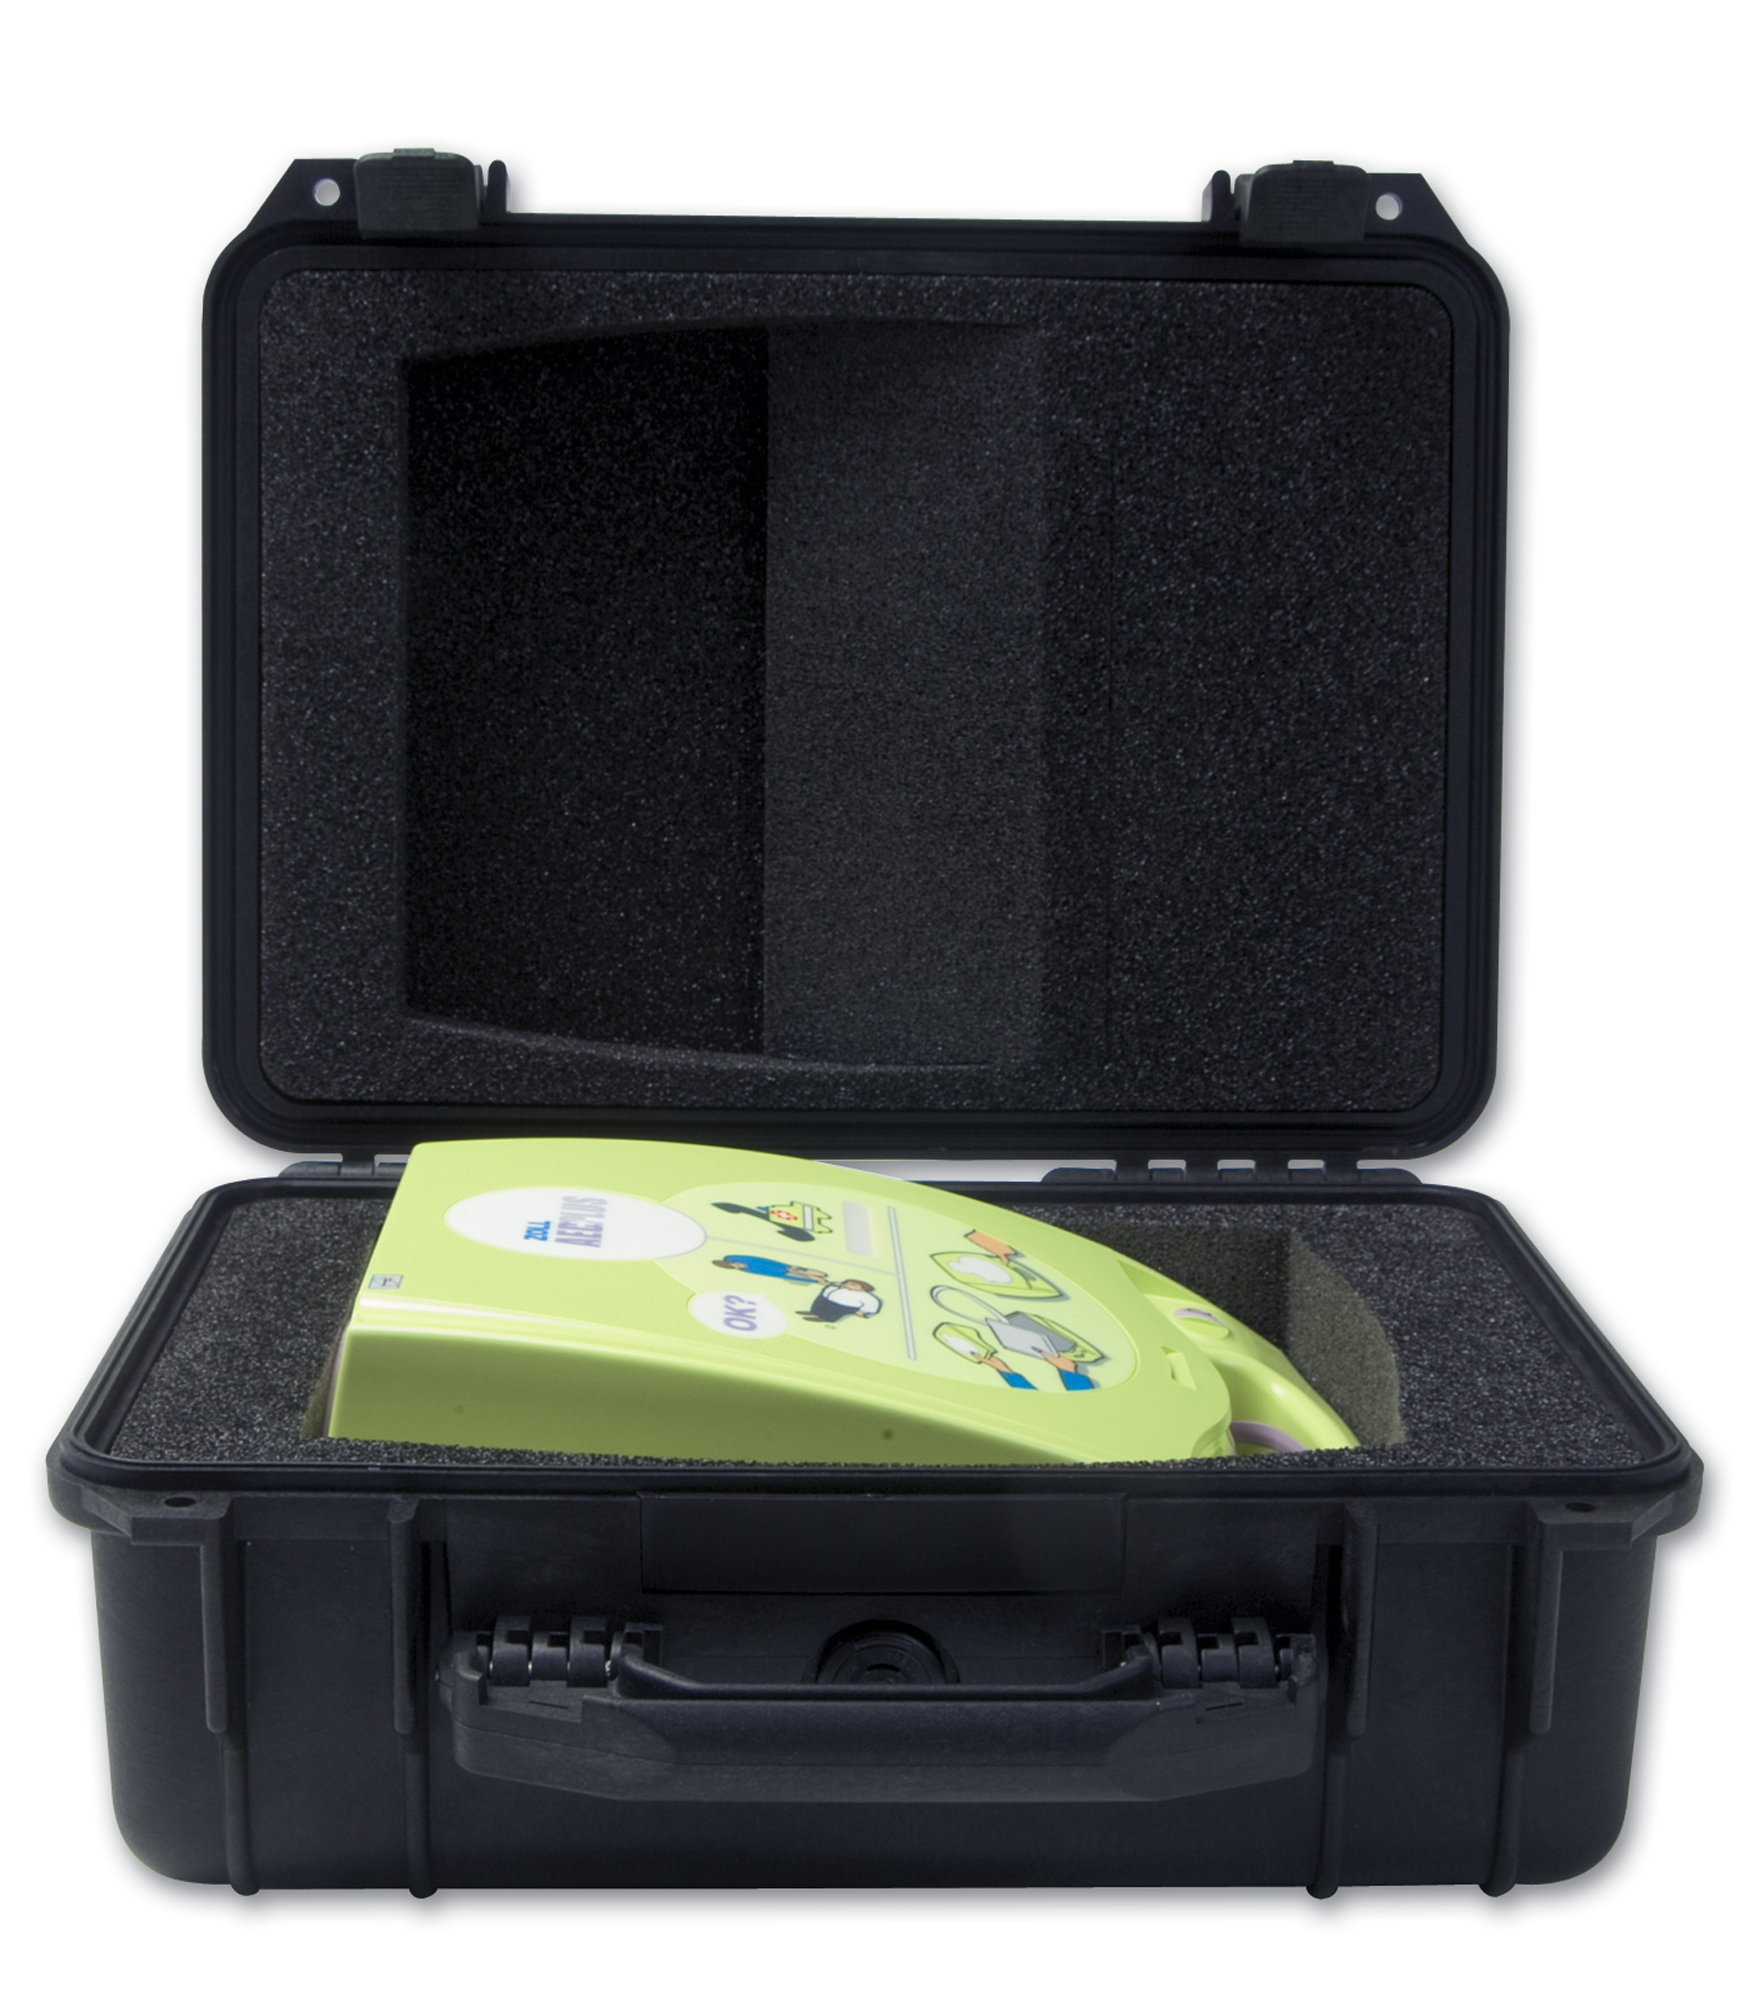 pelican store business case Your product will be shipped to its final destination to arrive in 2 business days or faster if your order is placed before the 11 am pst cutoff time, then it will ship that day and arrive 2 business days later.